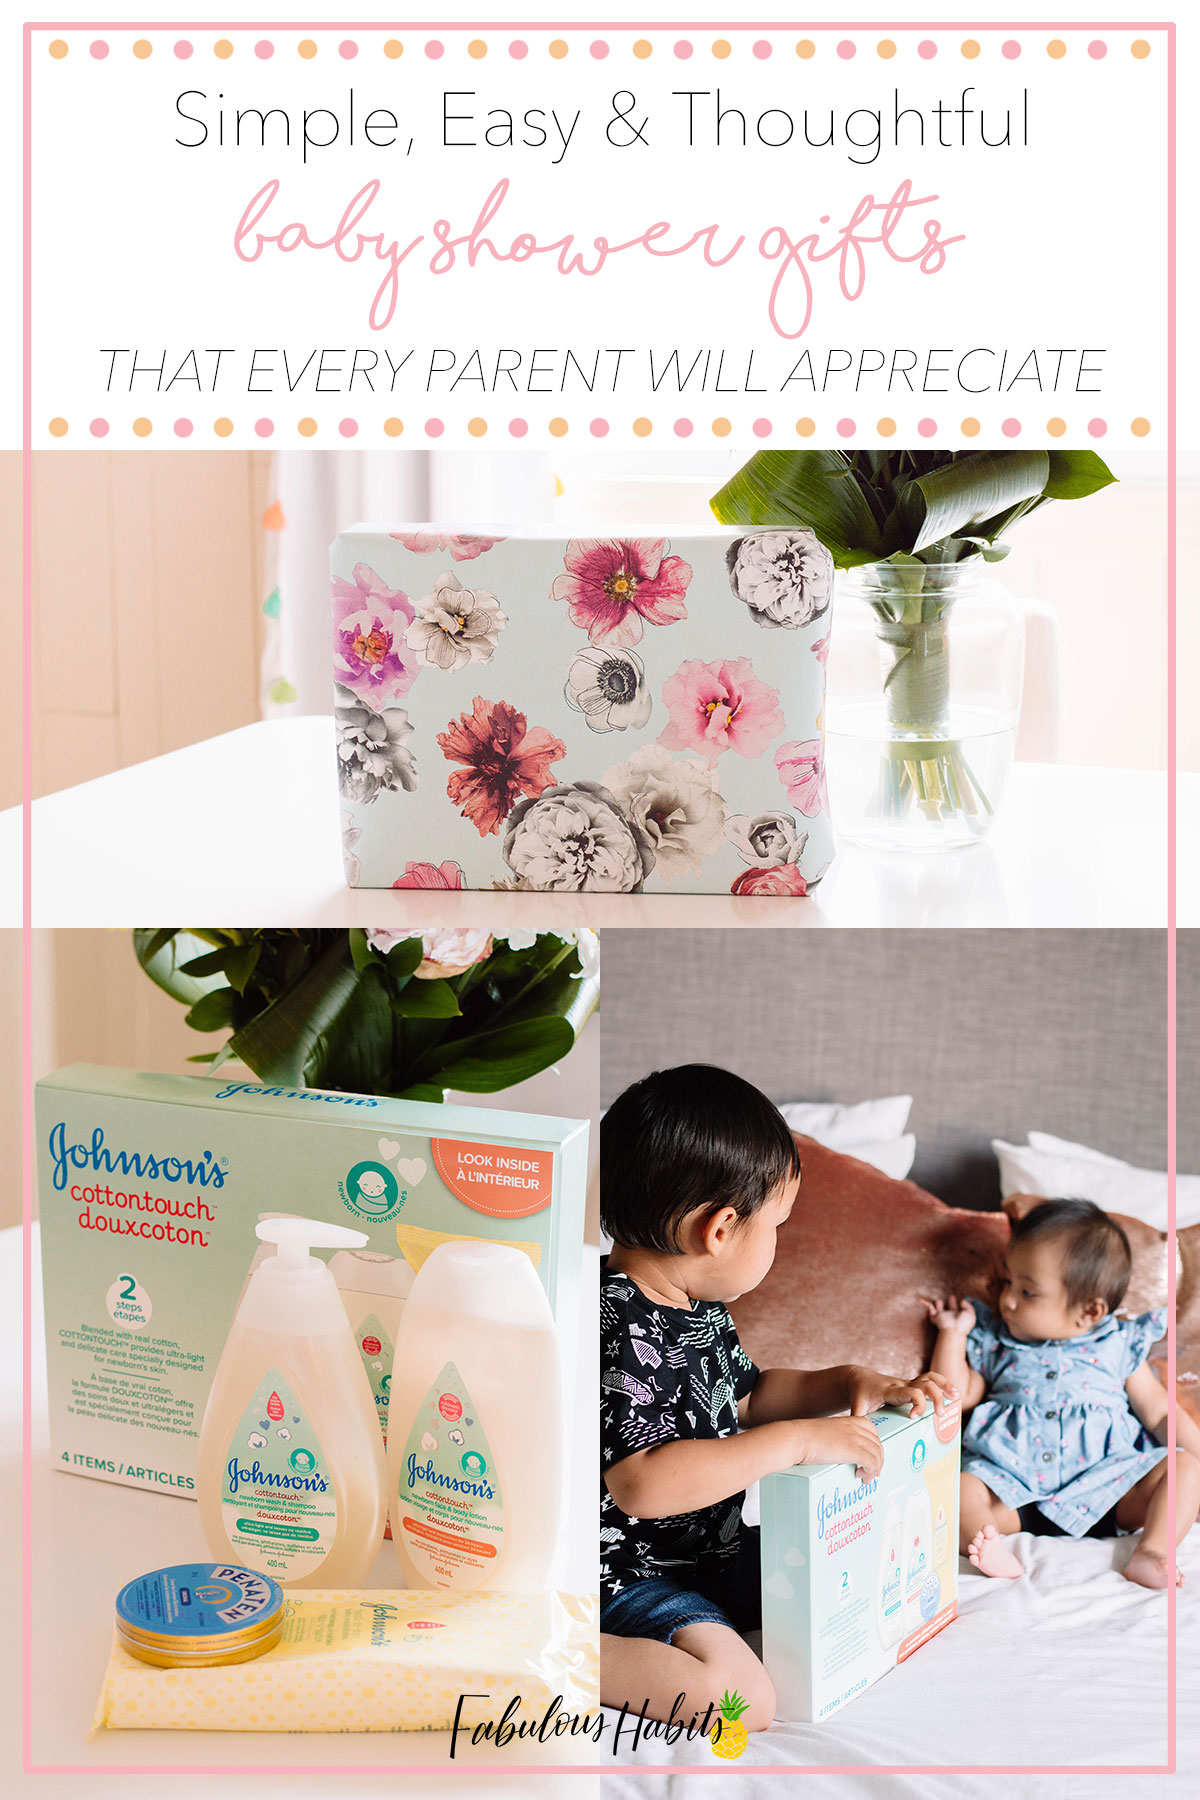 Baby showers are SO much fun to shop for and today, we're sharing our top baby shower gift ideas! Cheers to a wonderful celebration! #babyshowergiftideas